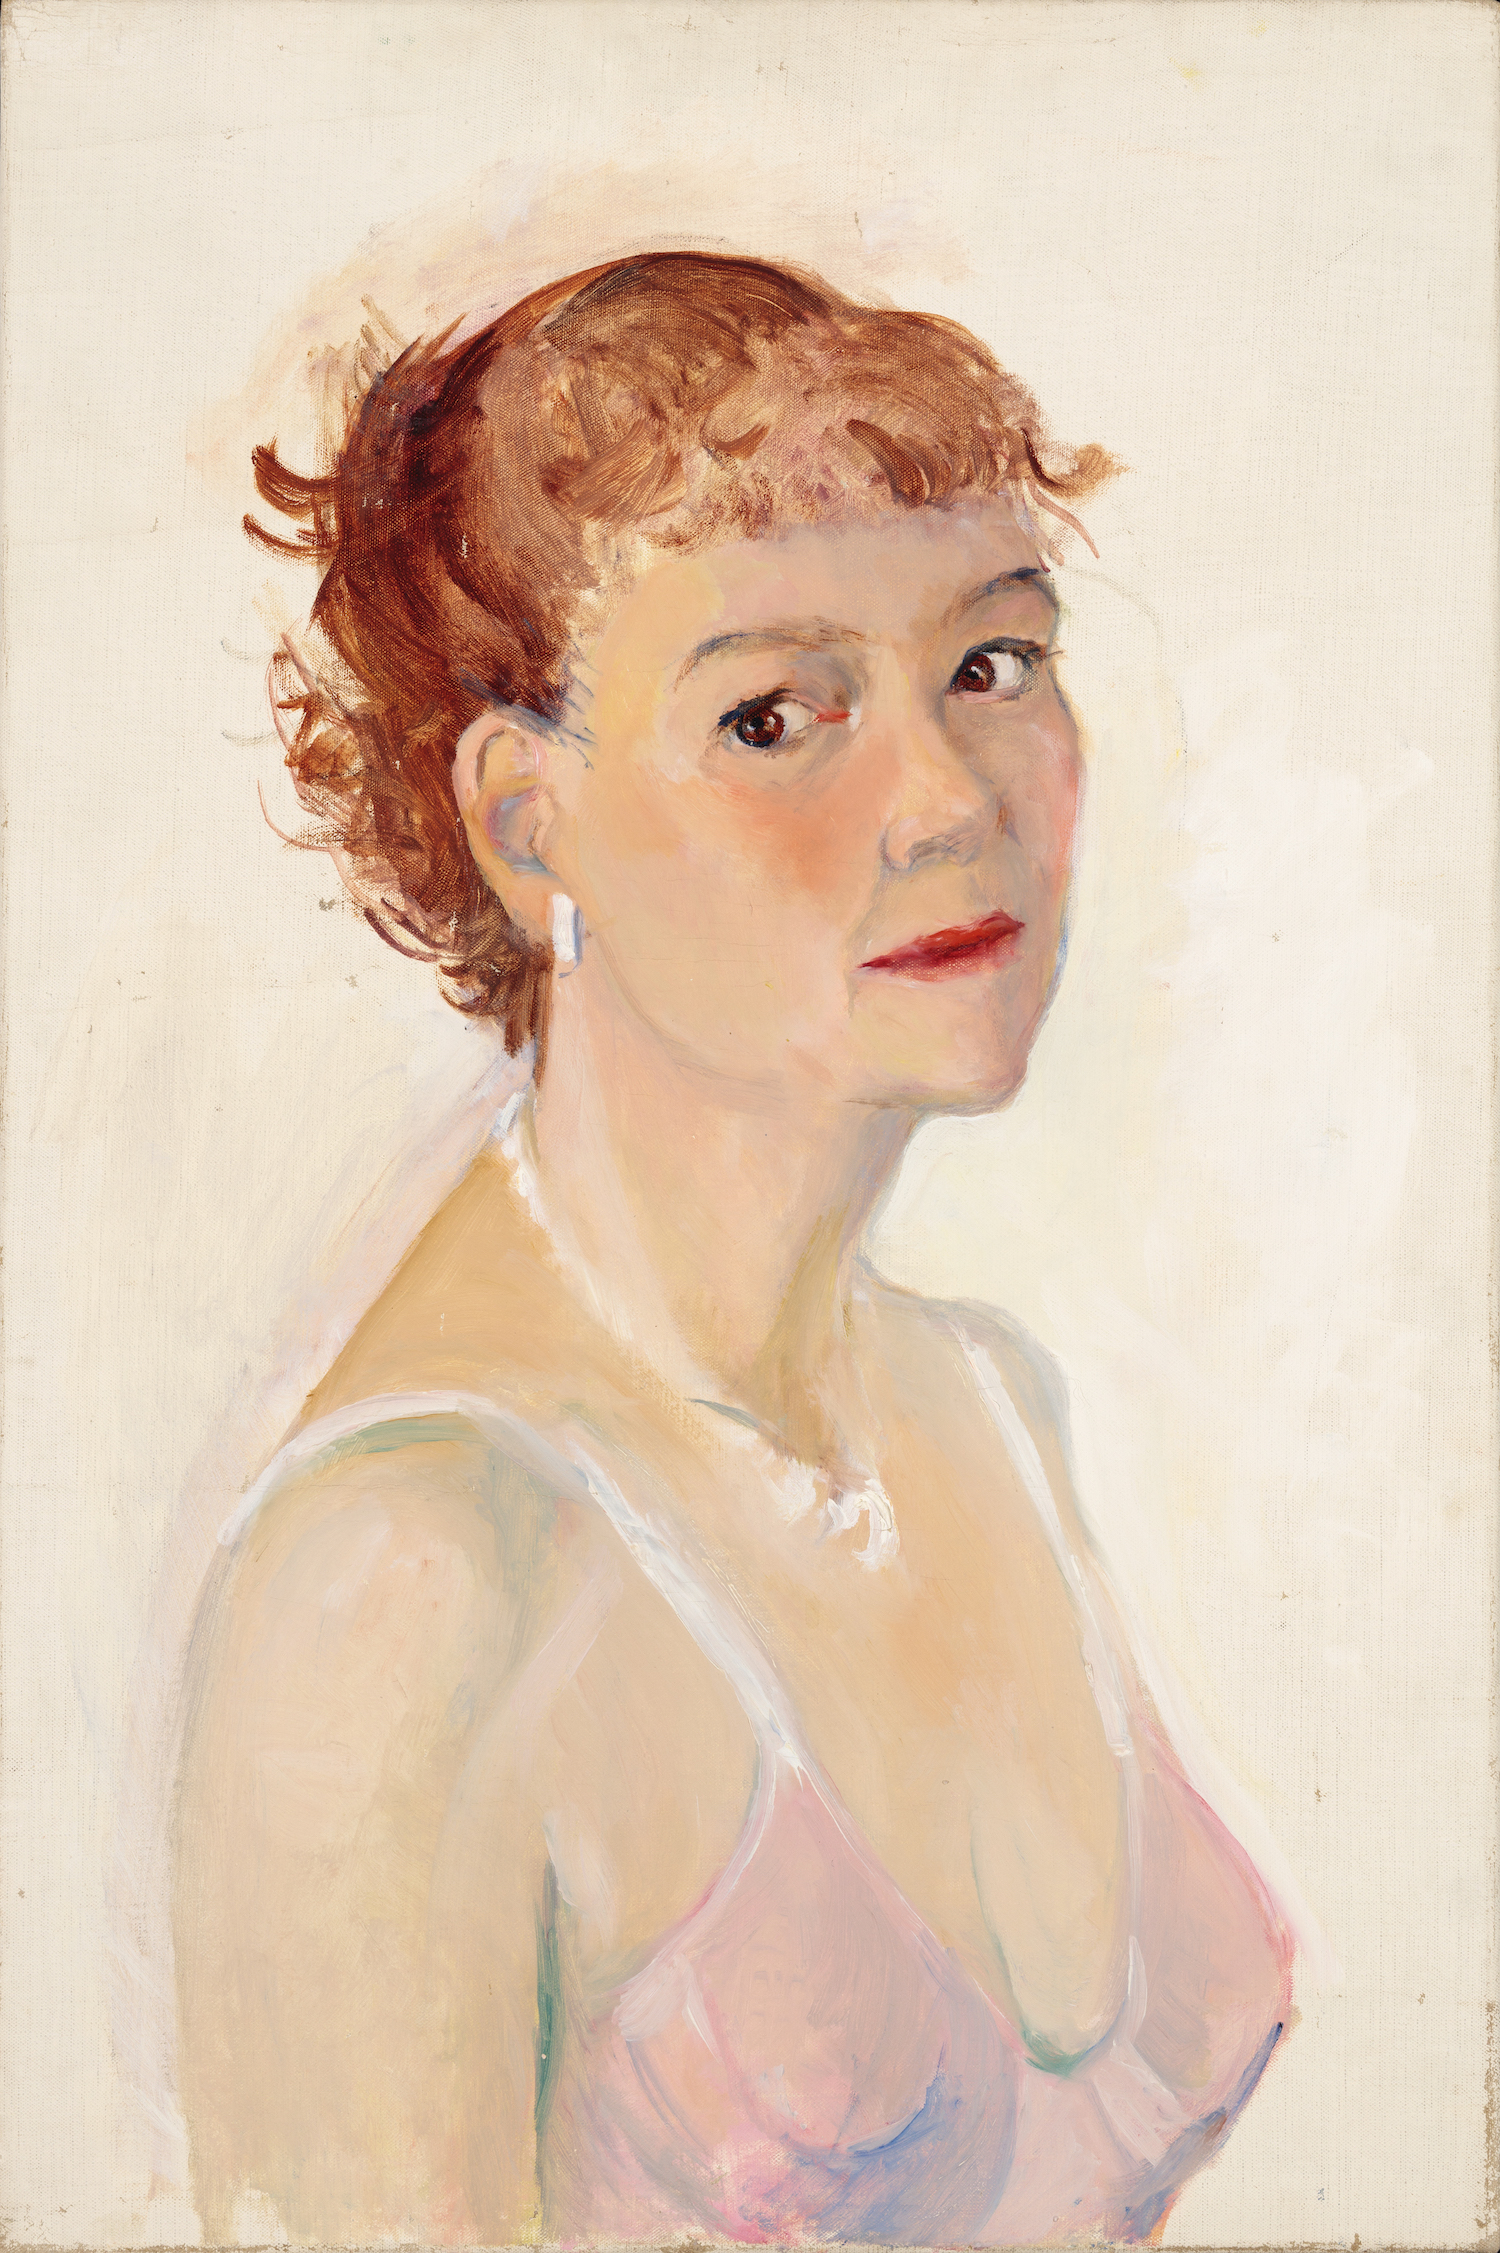 Josephine Verstille (Nivison) Hopper, Untitled (Self-portrait). Courtesy PAAM, gift of Laurence C and J Anton Schiffenhaus in memory of Mary Schiffenhaus, and two anonymous donors, 2016